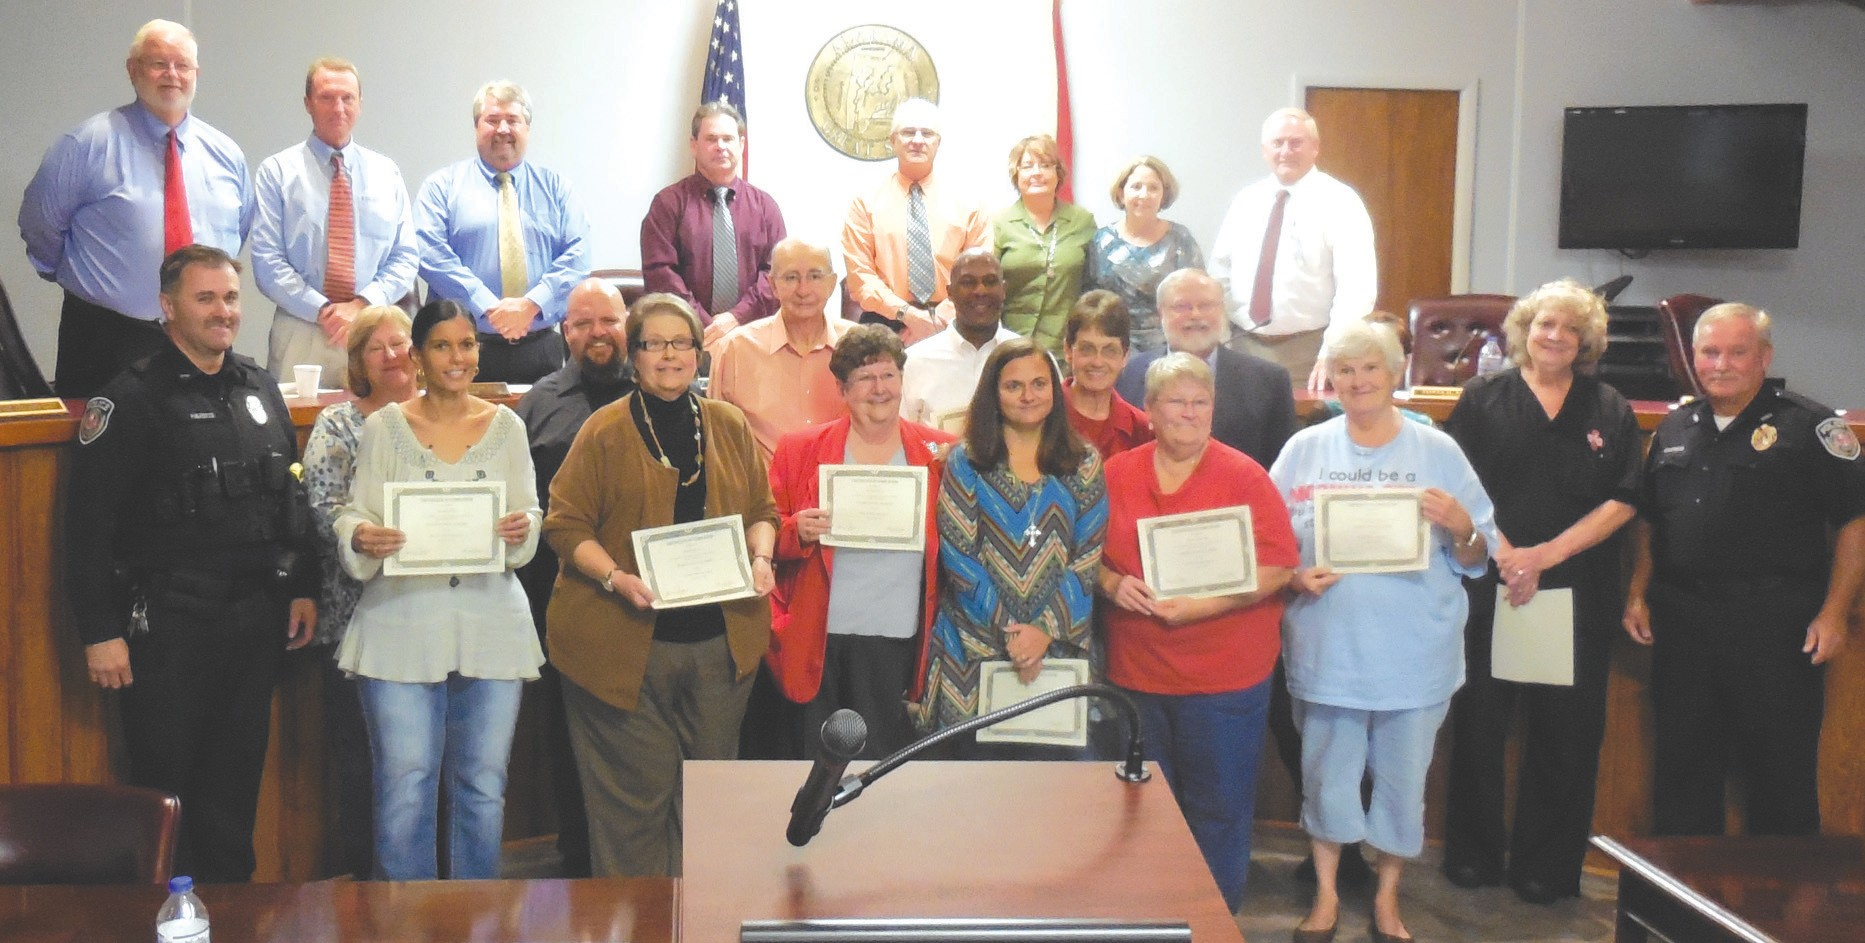 Oneonta Citizens Police Academy 2015 graduates display their certificates awarded at last week's city council meeting. Shown are [left to right (front)]: academy director officer Mike Harris, Carmen Polk, June Peppers, Carolyn Jones, Gina Jackson, Phyllis Downing, Sherry Fox, Jan Aitken, police chief James Chapman, (middle) Patty Robinson, Jeremy Lesley, Bobby Jones, Nate Butler, Maryjane Garrett, Mike Brinkman, (back) councilors Tim McNair, Hal Blackwood, Mark Gargus, city manager Ed Lowe, mayor Ross Norris, city clerk Tammie Noland, and councilors Tonya Rogers, and Danny Robinson. Graduates Bobbi Davis and Randy Casson were not in the photograph.